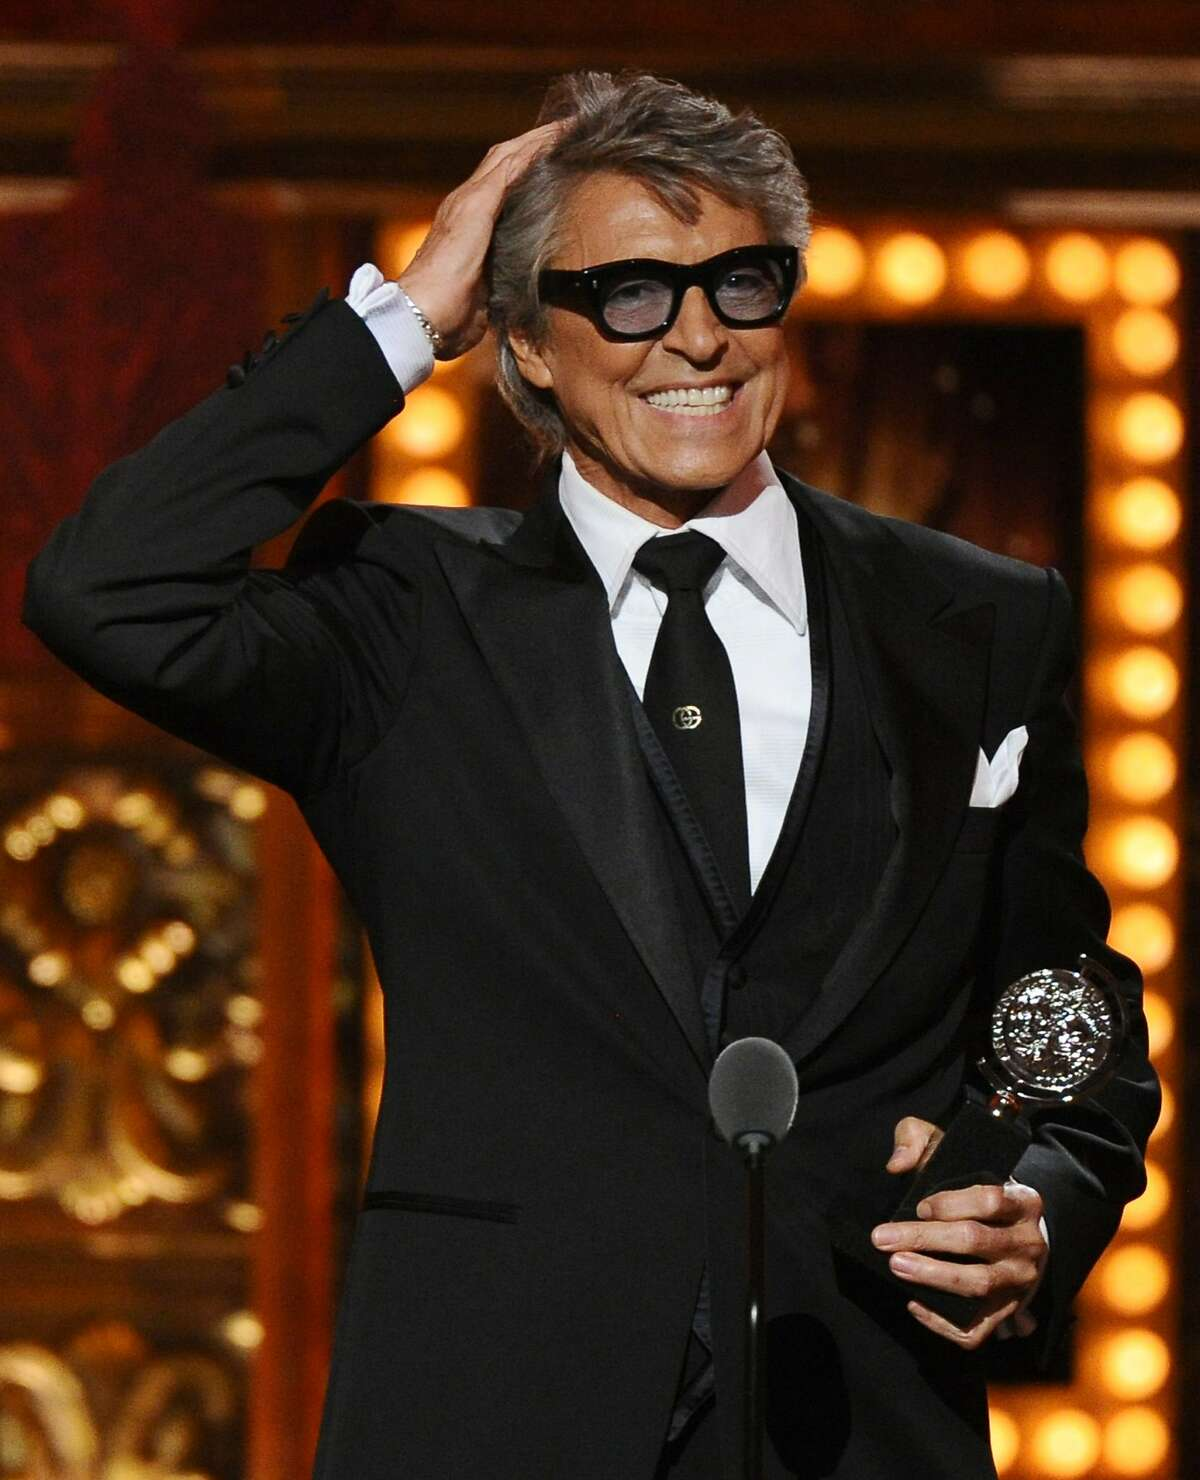 Tommy Tune accepts the Tony lifetime achievement award at the 69th annual Tony Awards at Radio City Music Hall on Sunday, June 7, 2015, in New York. (Photo by Charles Sykes/Invision/AP)